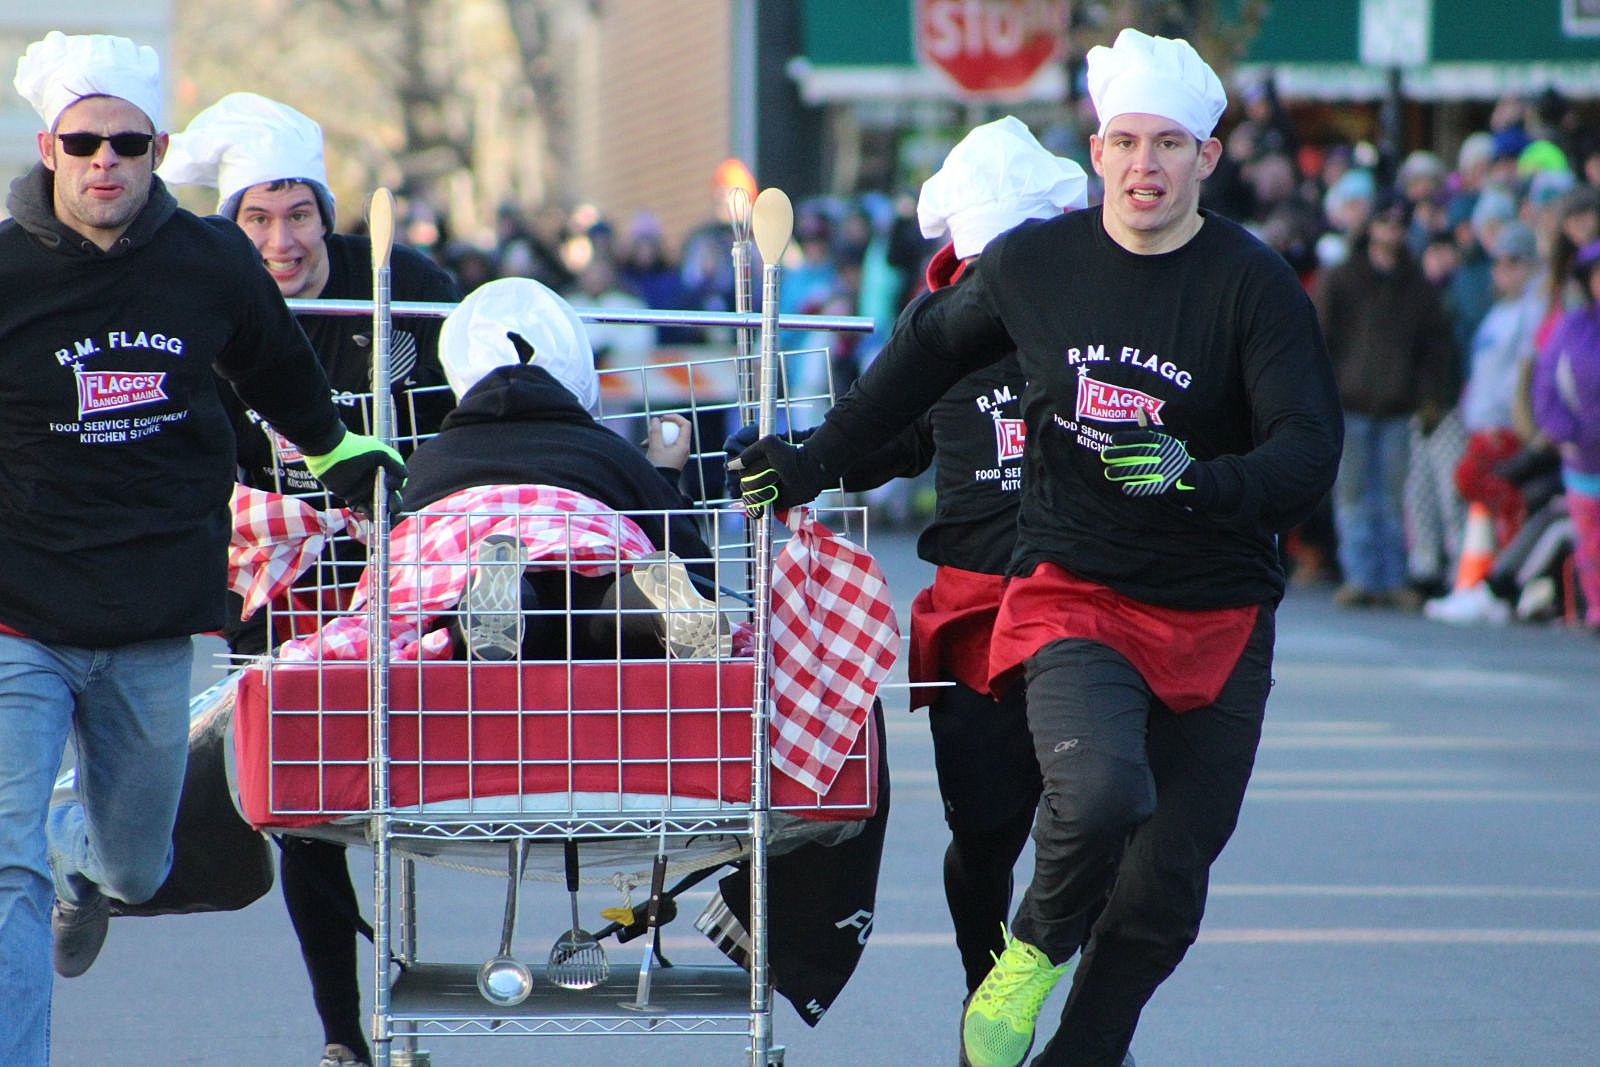 Bar Harbor's Bed Race – The Shocking Truth According to Alf Anderson